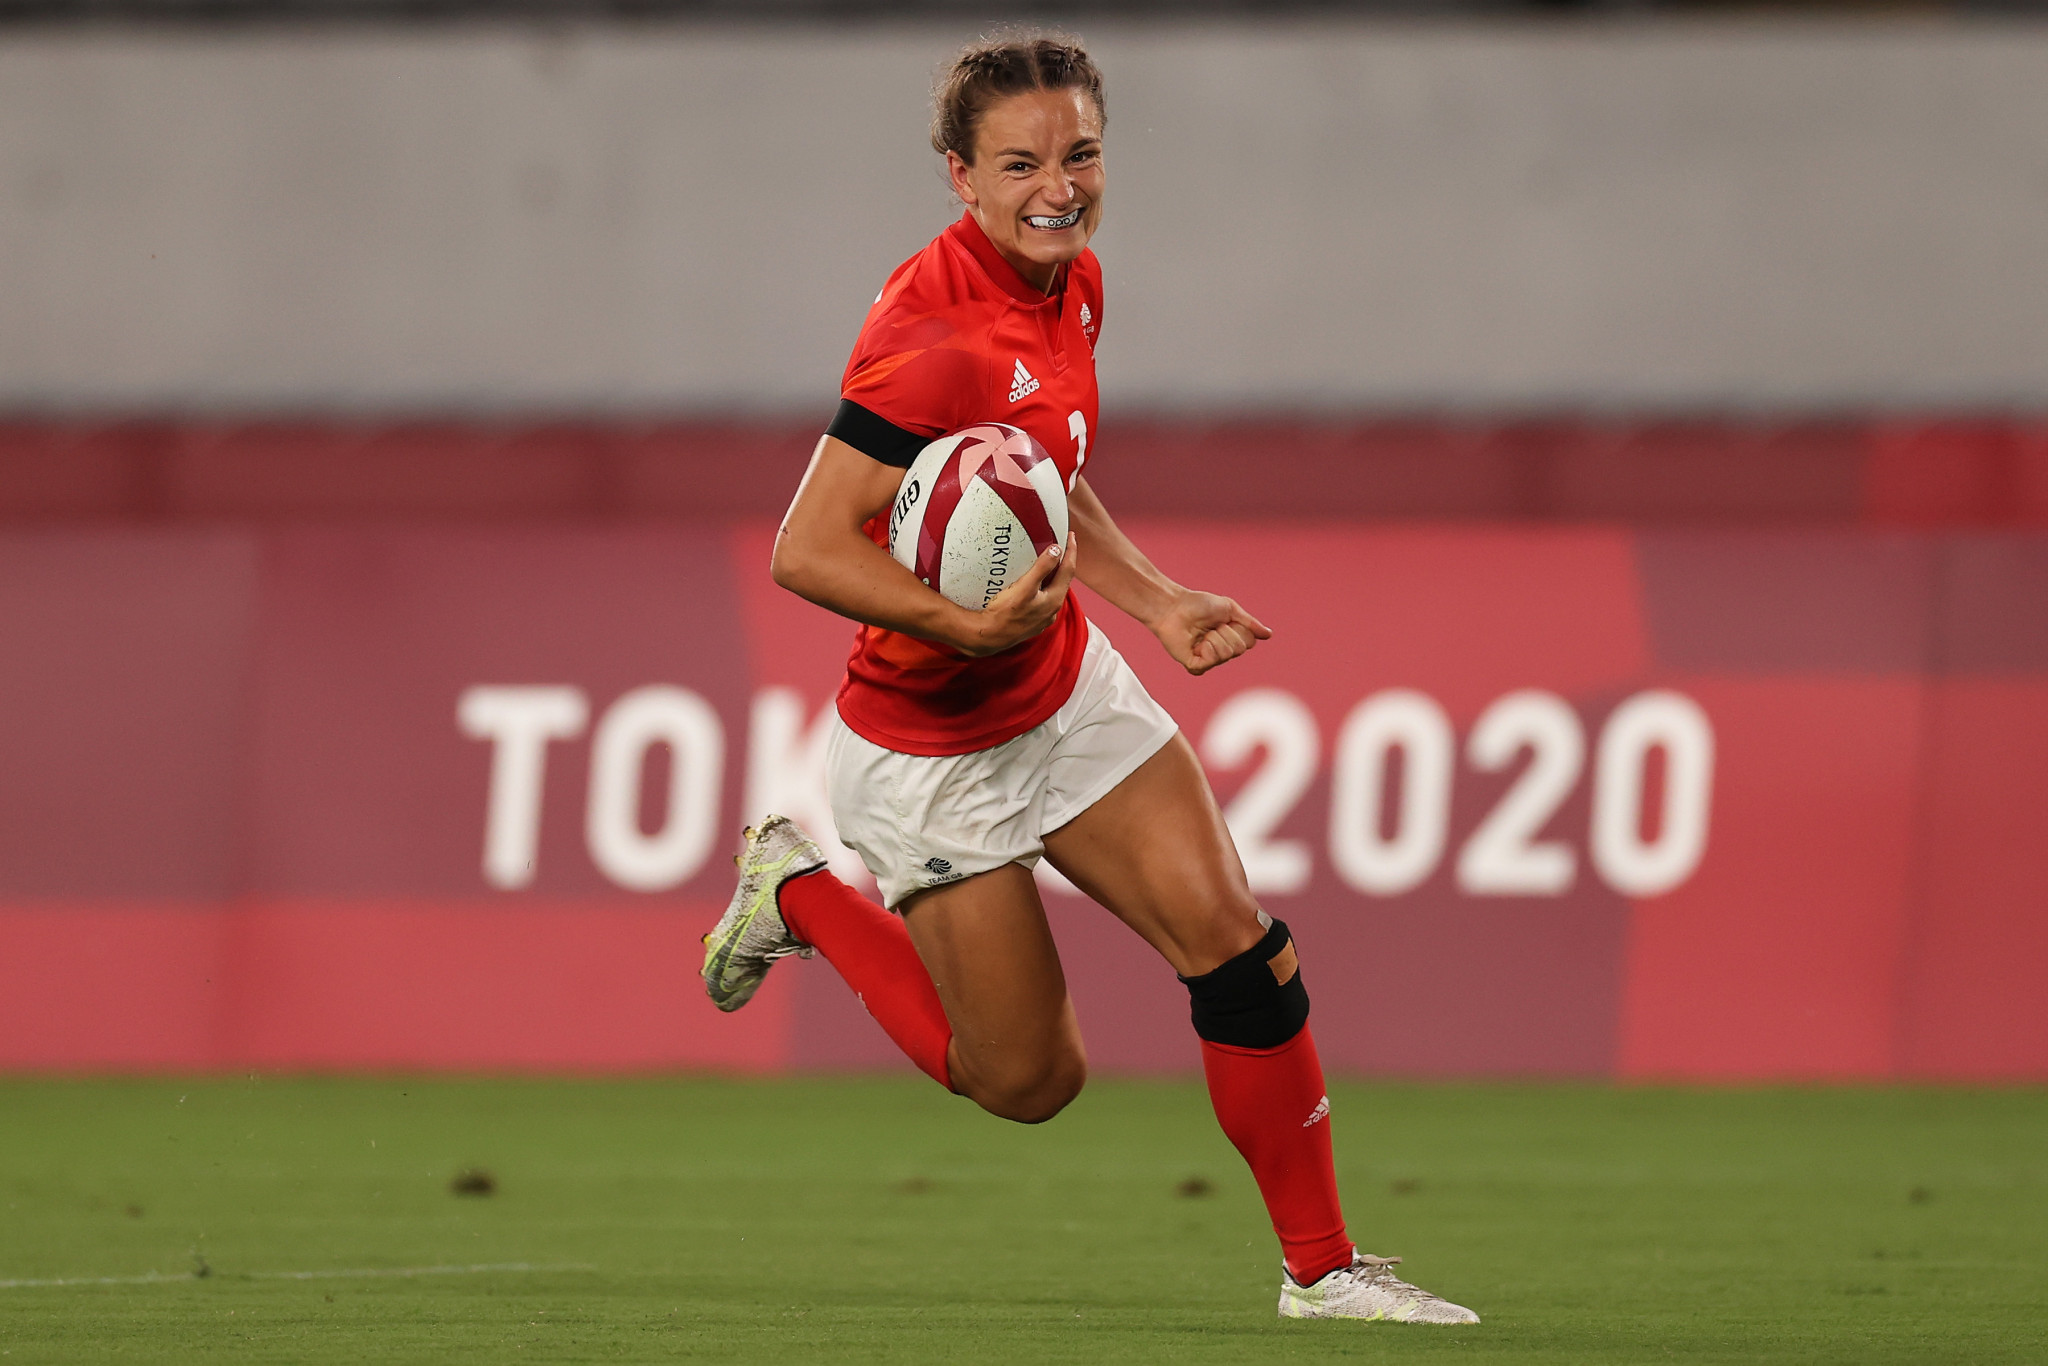 Jasmine Joyce notched a hat-trick of tries to help Britain beat the United States 34-12 in the final of the women's Fast Four competition ©Getty Images